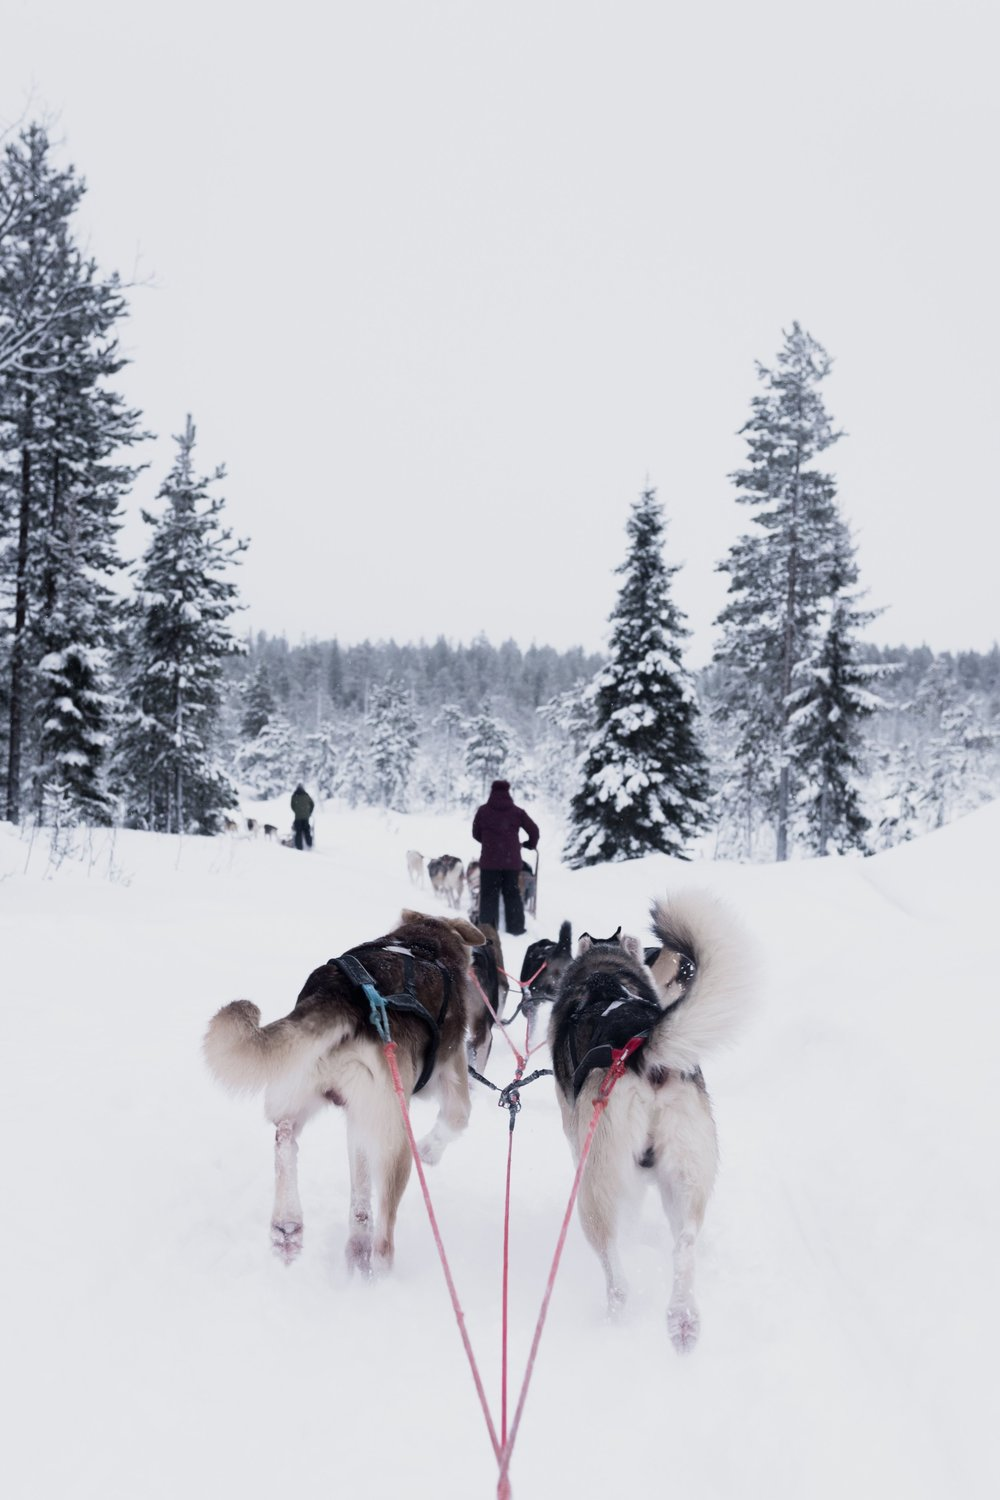 dogsledding - Heed the call of the wild and book a ride with Monarch Dog Sleds - first, meet the dogs and learn about the sport of mushing, then learn how to harness a dog and take a 30-35 minute dogsled ride through the national forest.